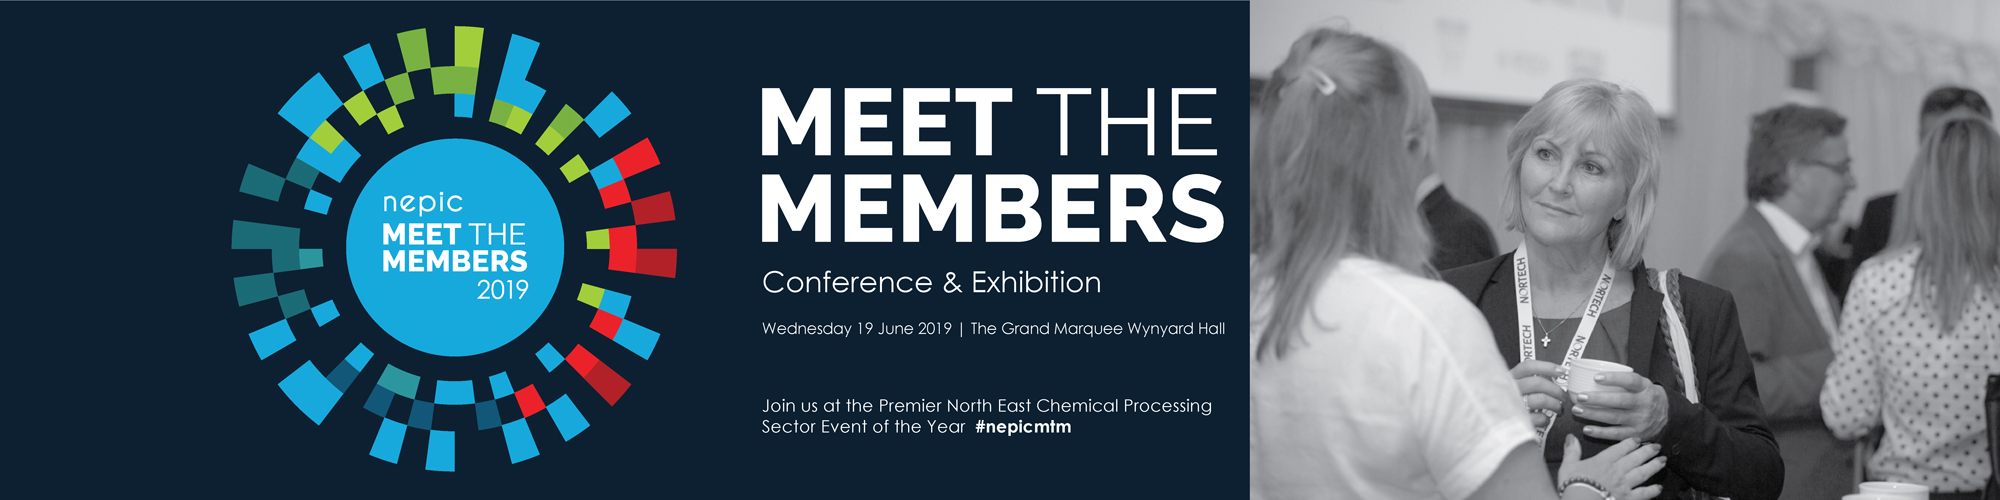 NEPIC Meet the Members 2019